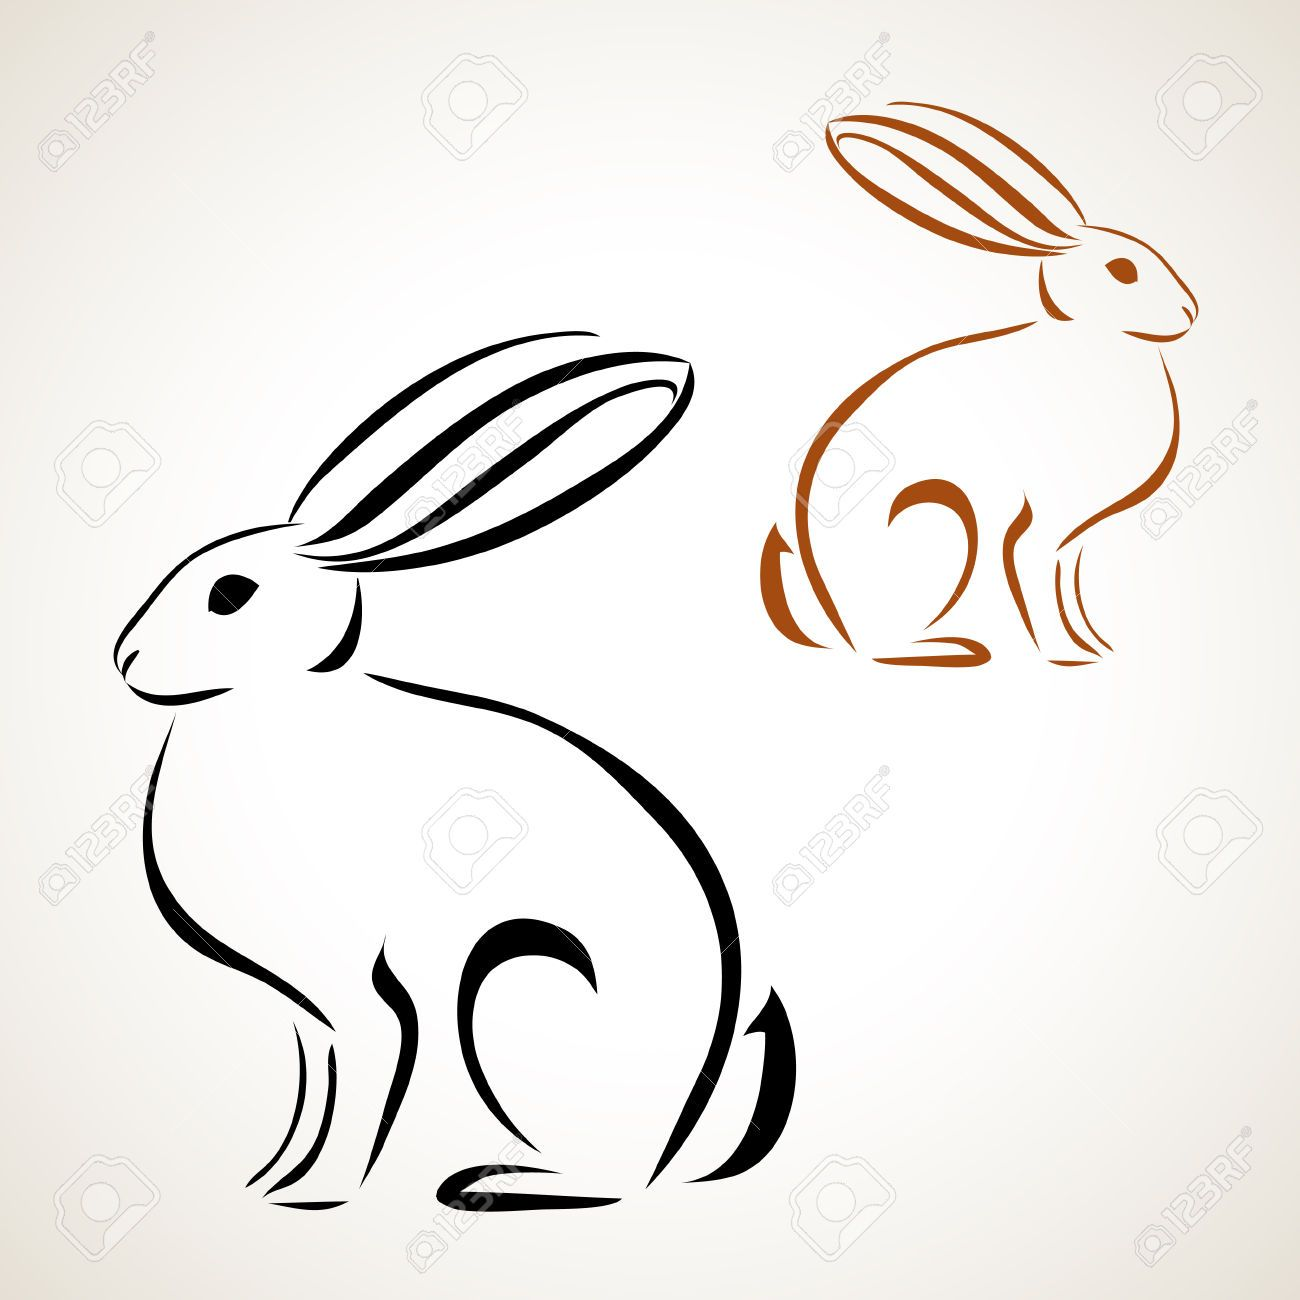 Easter Card With Rabbit Outline Royalty Free Cliparts